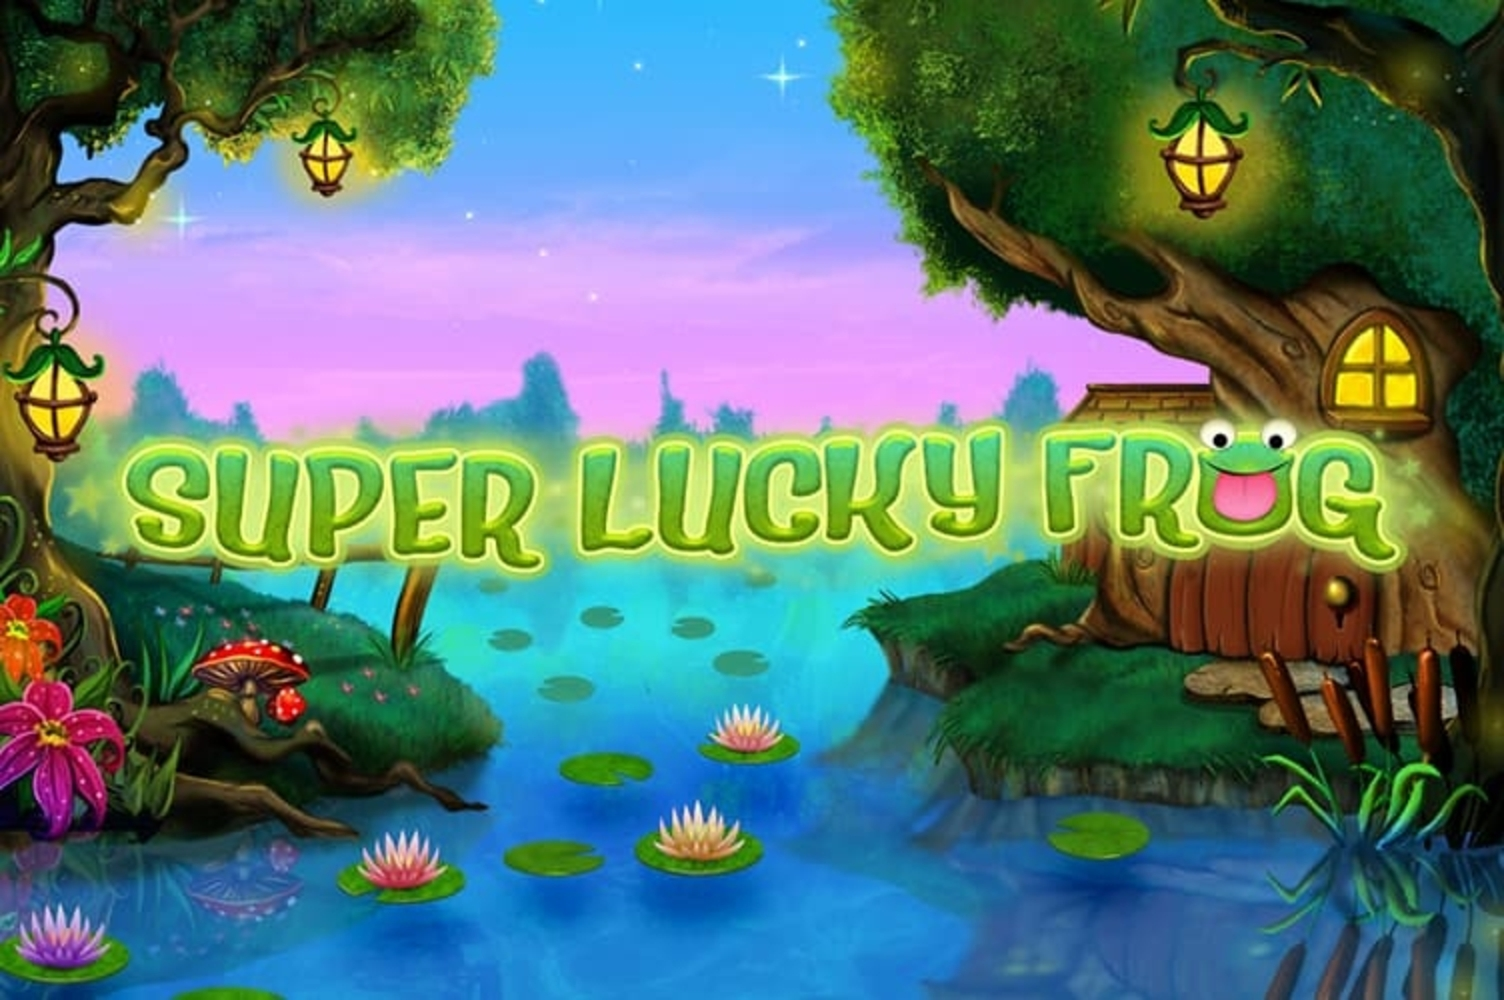 The Super Lucky Frog (NetEnt) Online Slot Demo Game by NetEnt